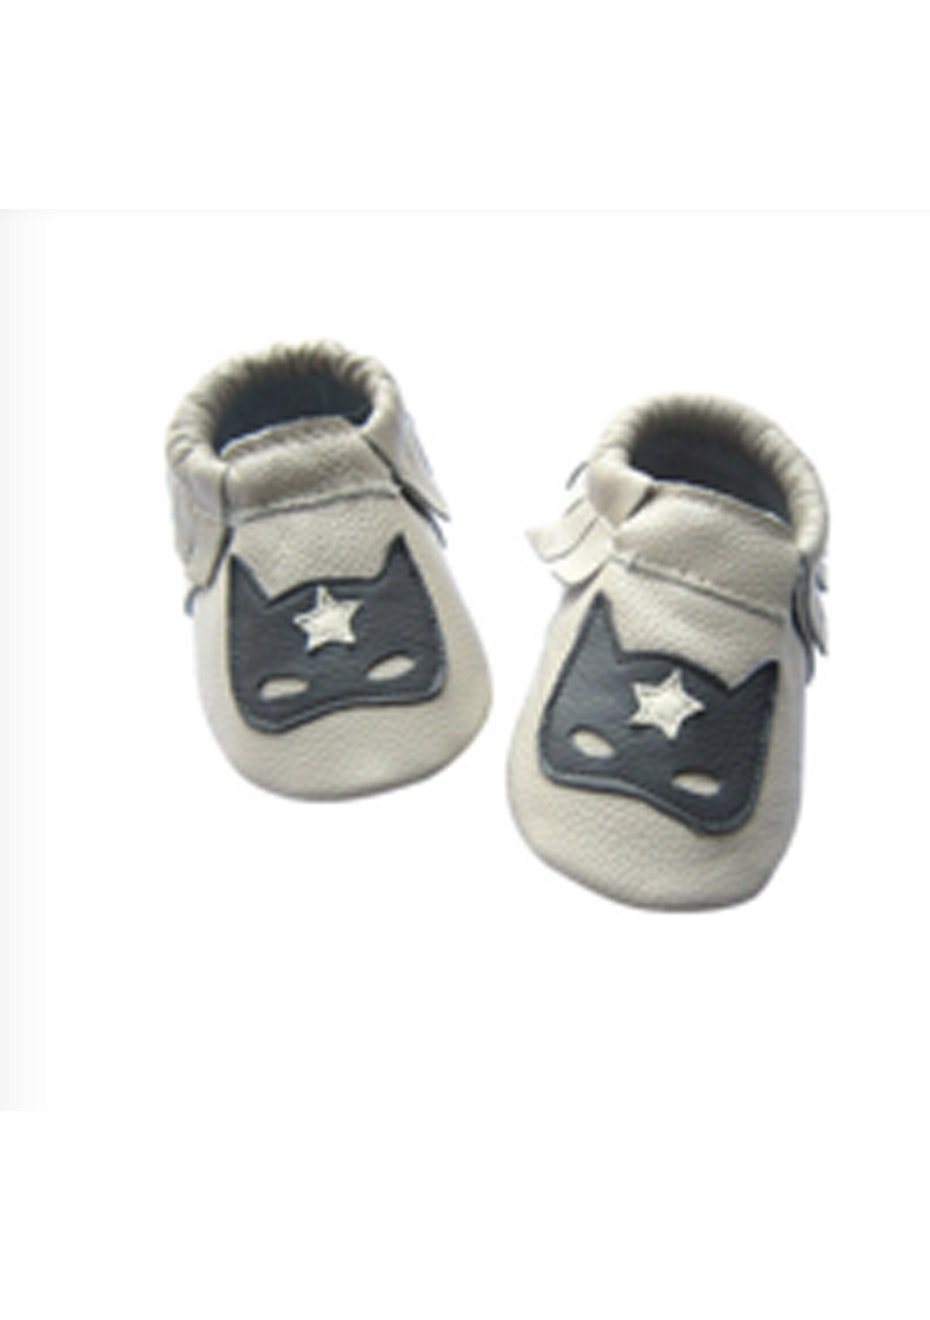 Baby  Leather Shoes - Beige/Grey